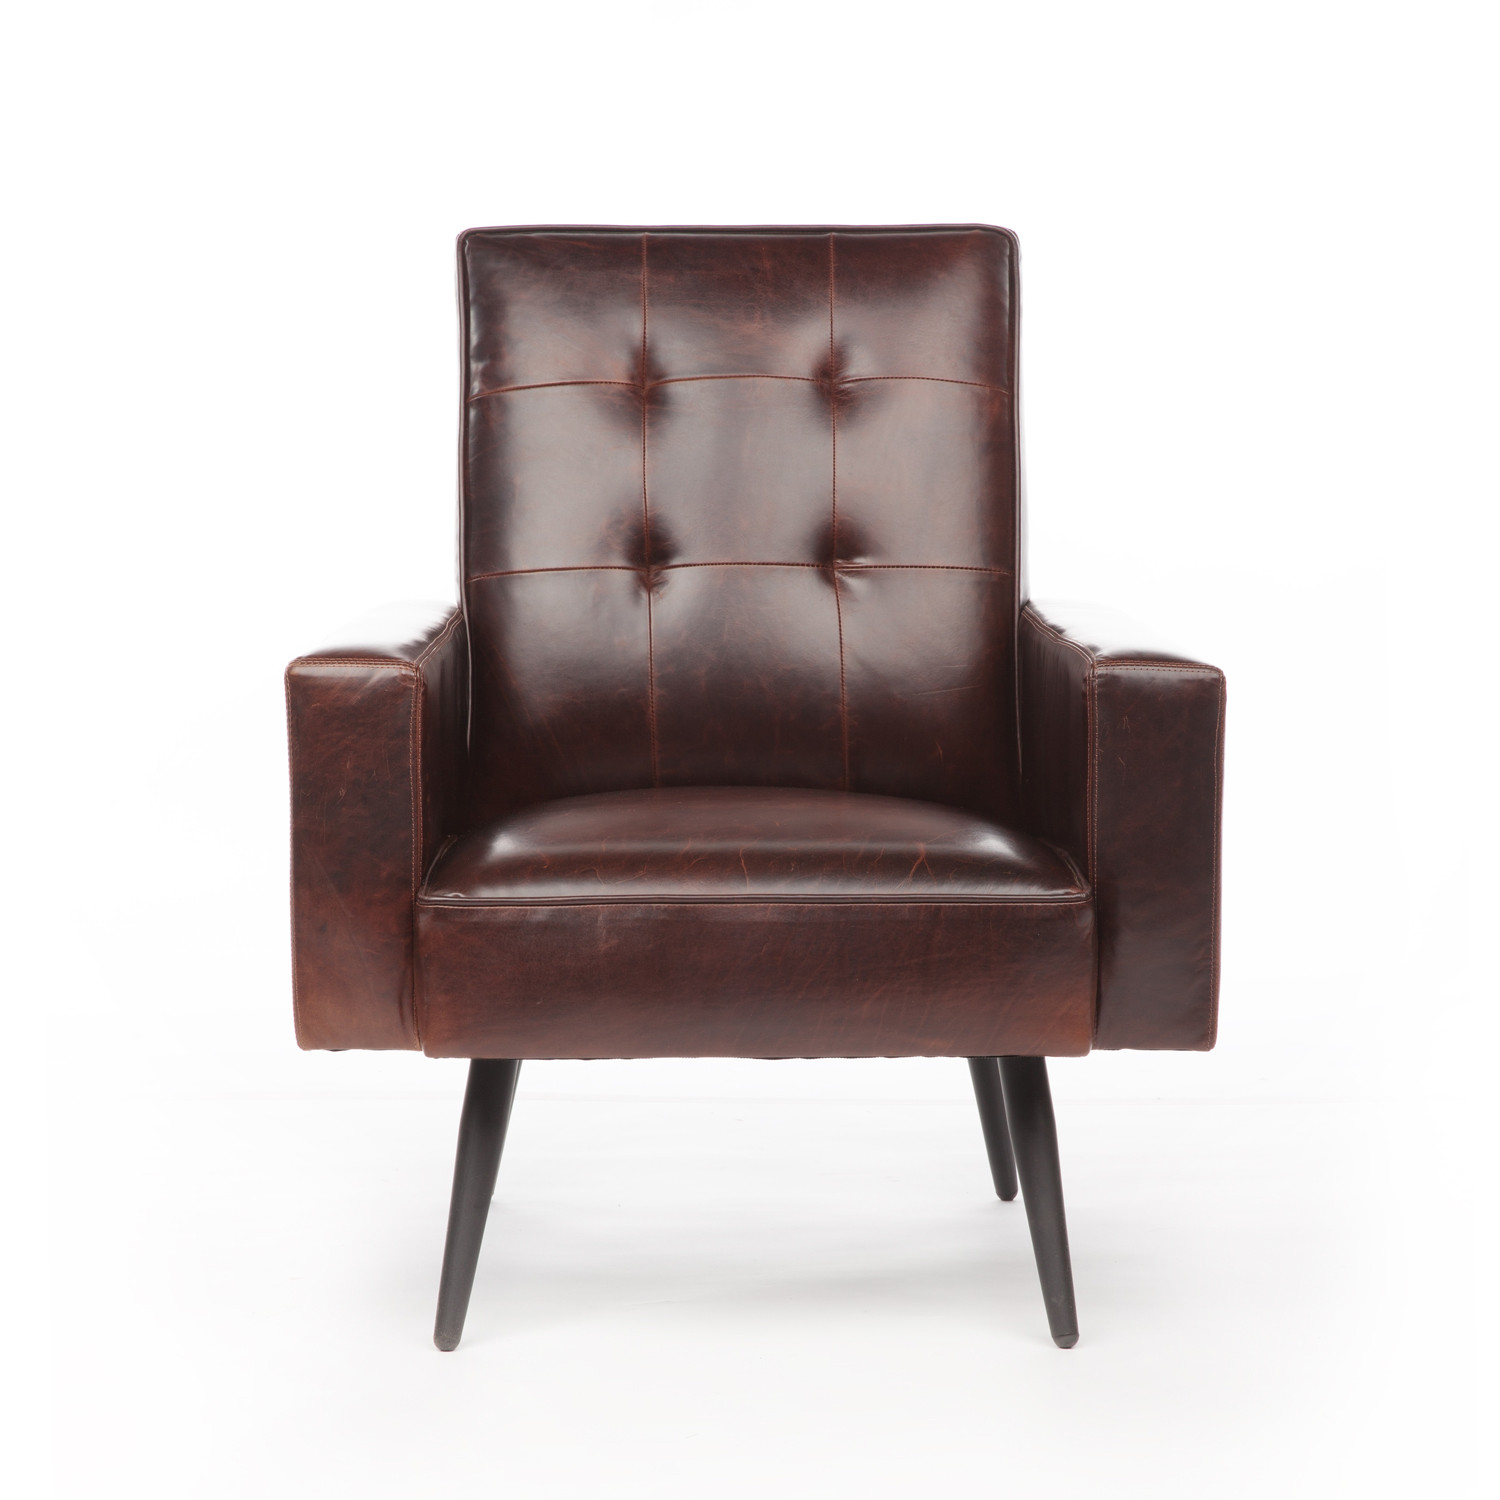 Awesome Stark Leather Chair Brompton Brown Jaxon Home Touch Ncnpc Chair Design For Home Ncnpcorg